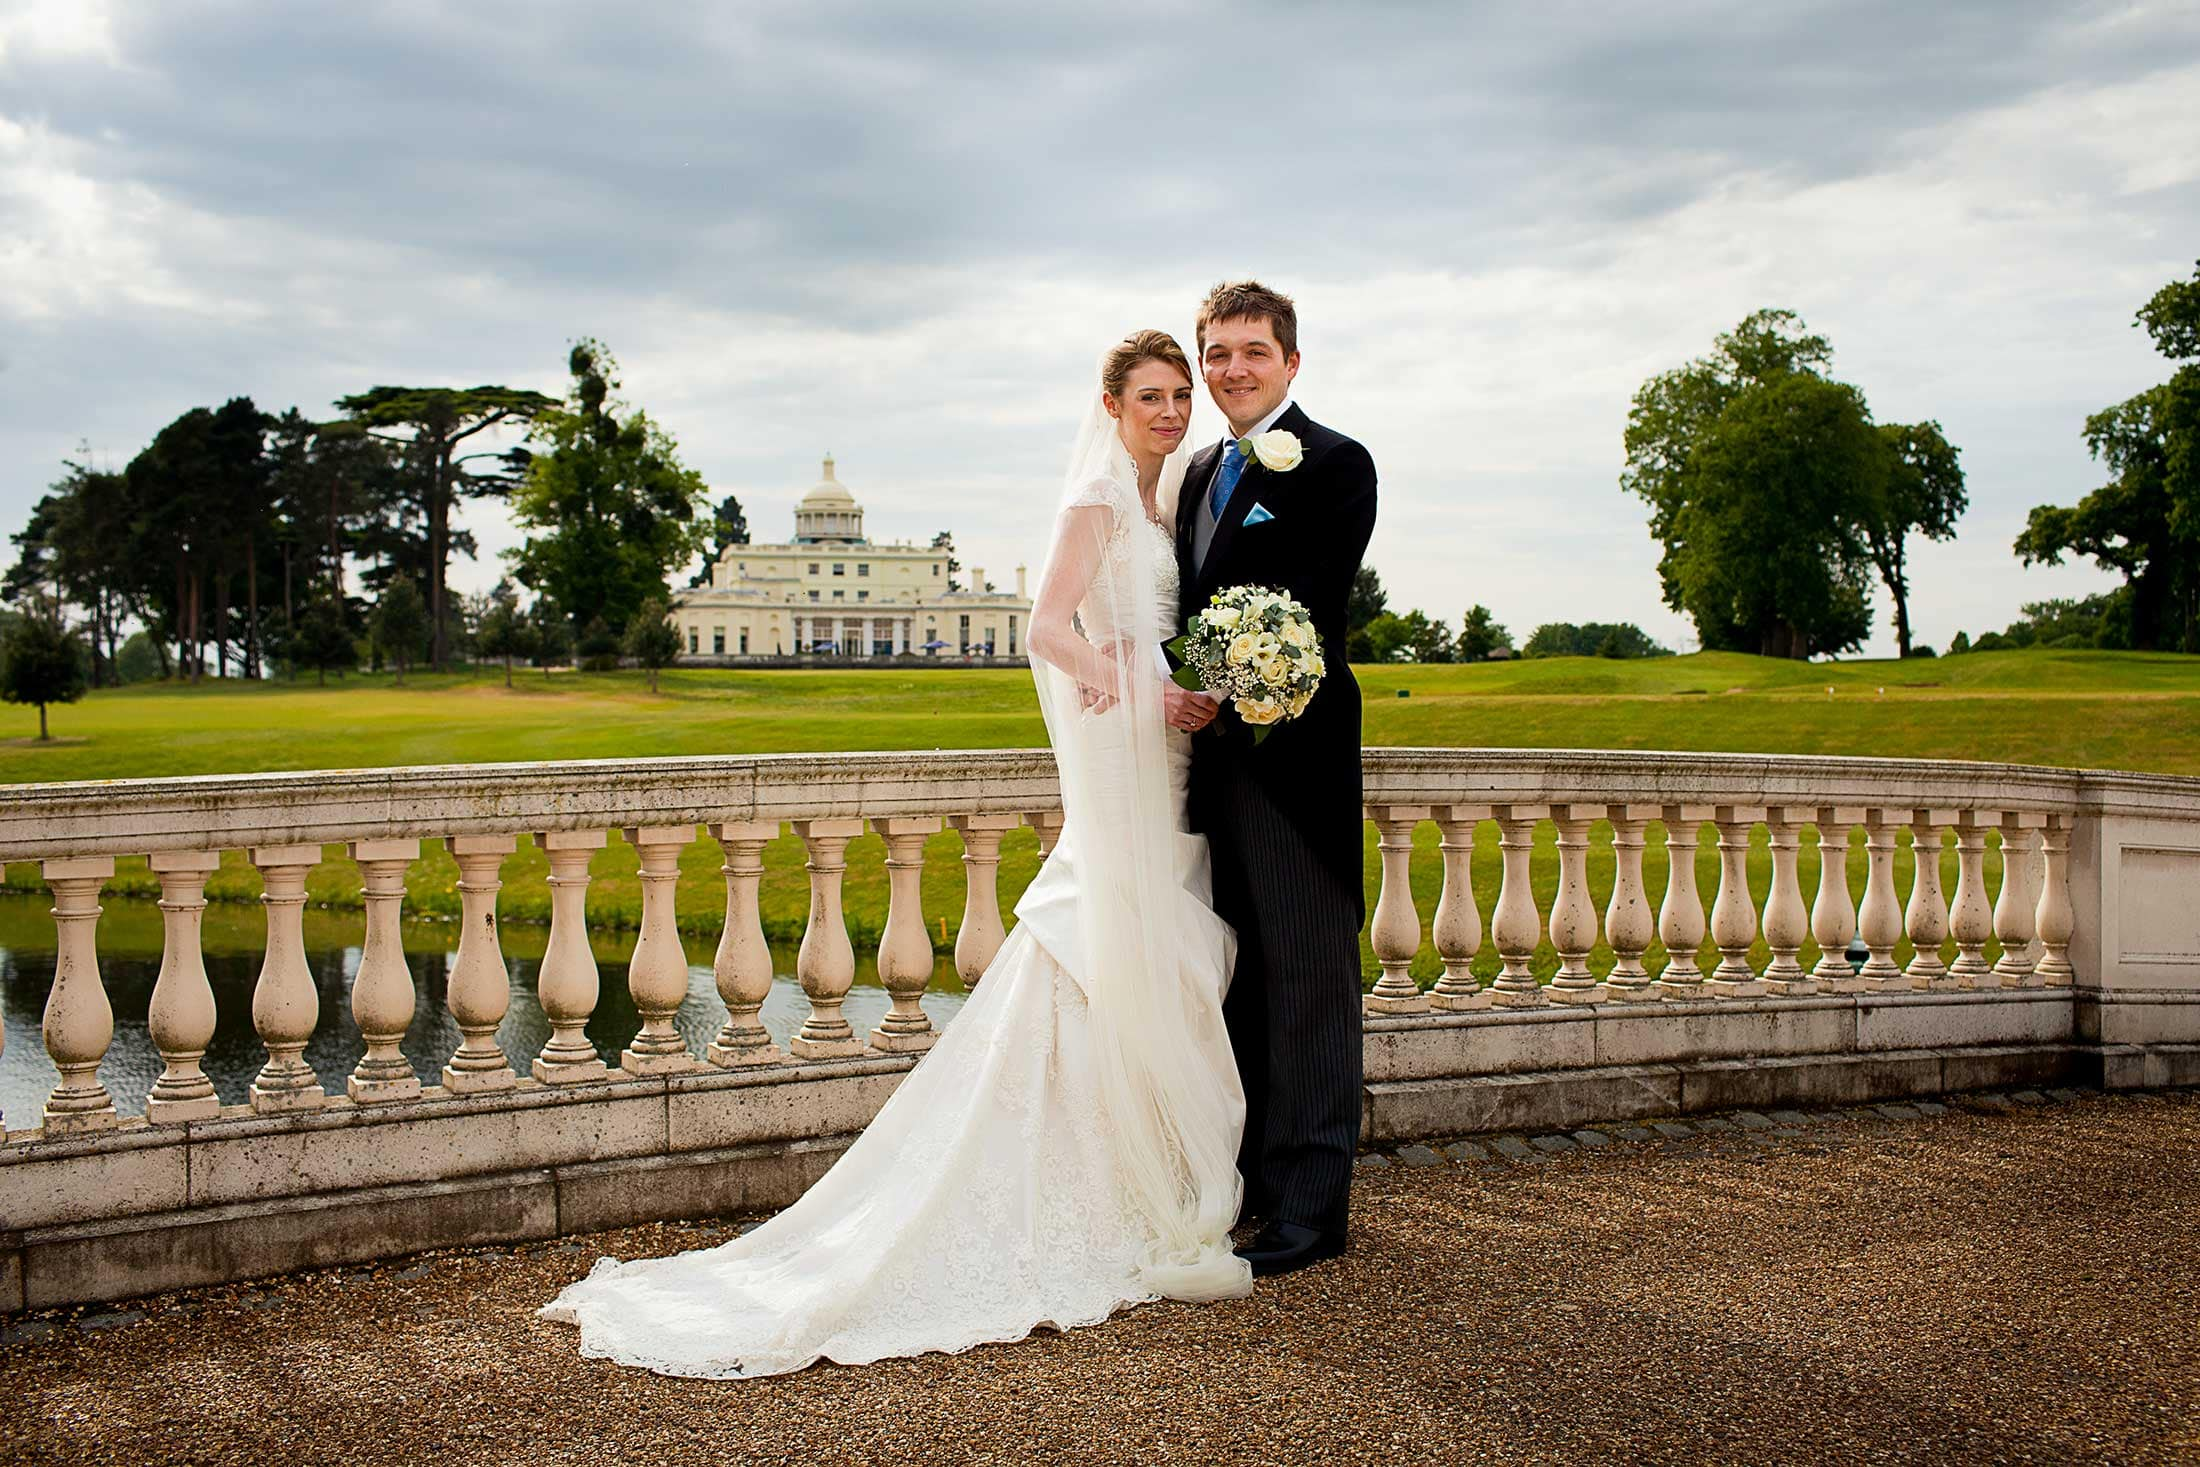 Stoke Park wedding photographer | Ellie & Richard